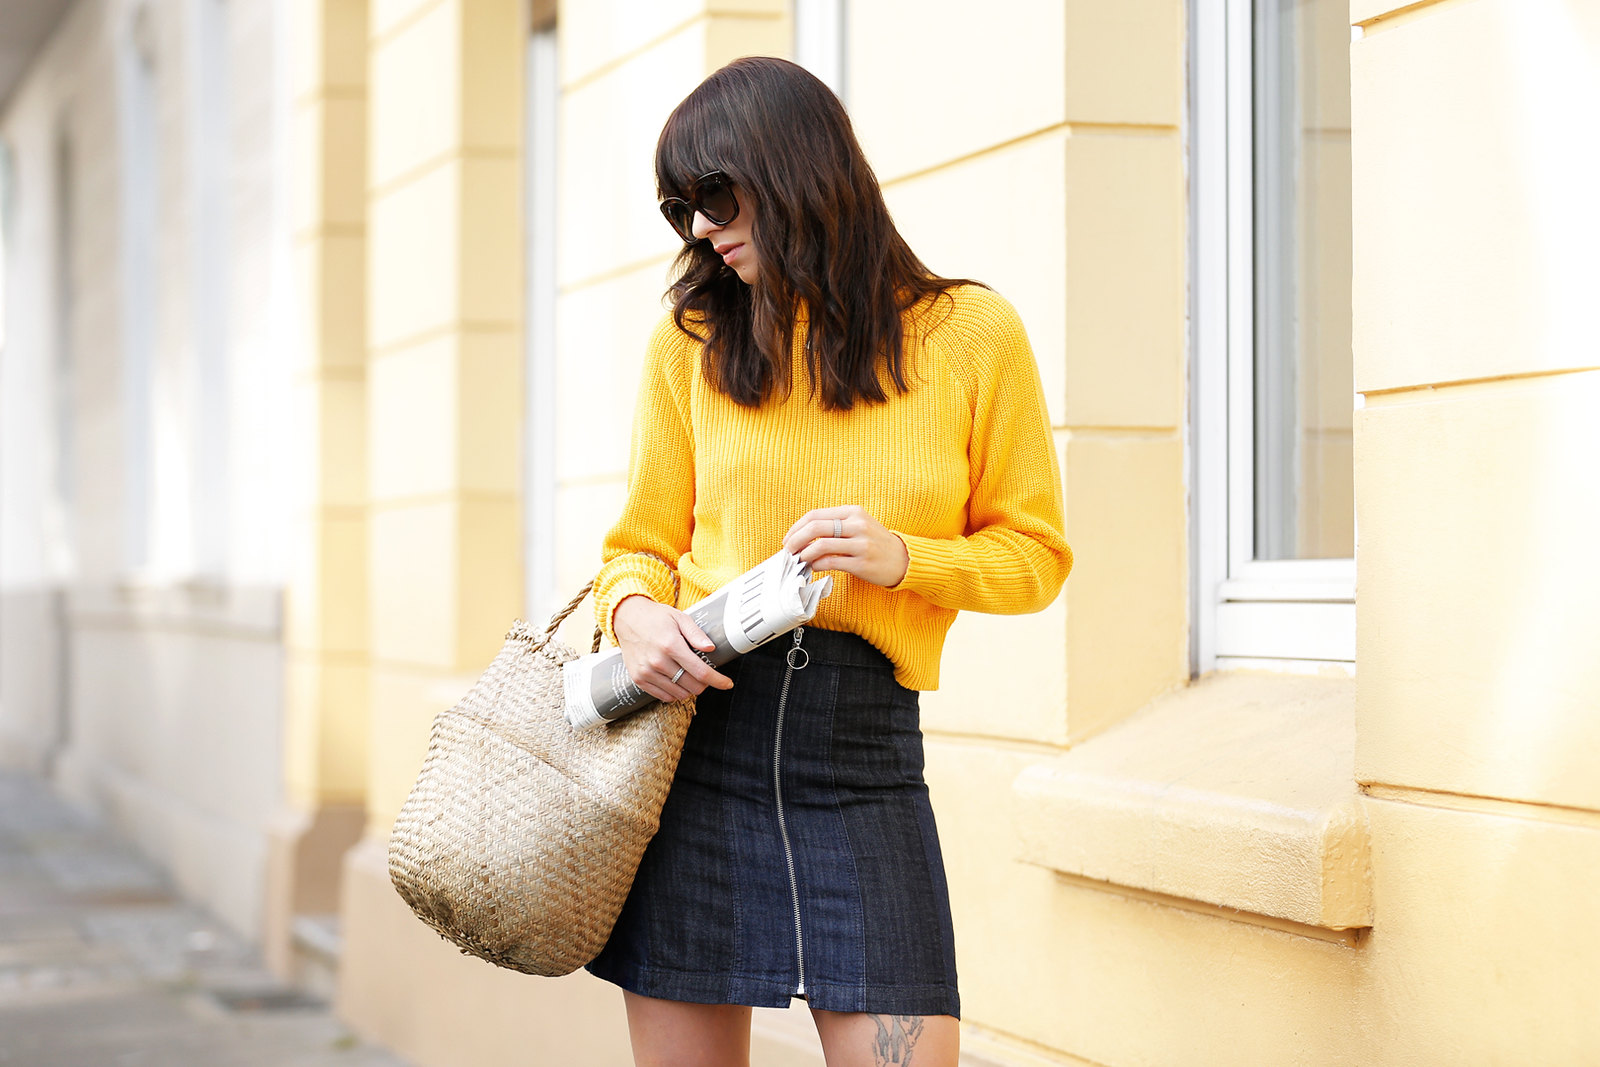 ootd outfit yellow knit turtleneck mini skirt basket jane birkin francoise hardy inspired french icons parisienne style bangs brunette céline audrey sunglasses cats & dogs fashion blog ricarda schernus modeblog fashionblogger germany berlin 5